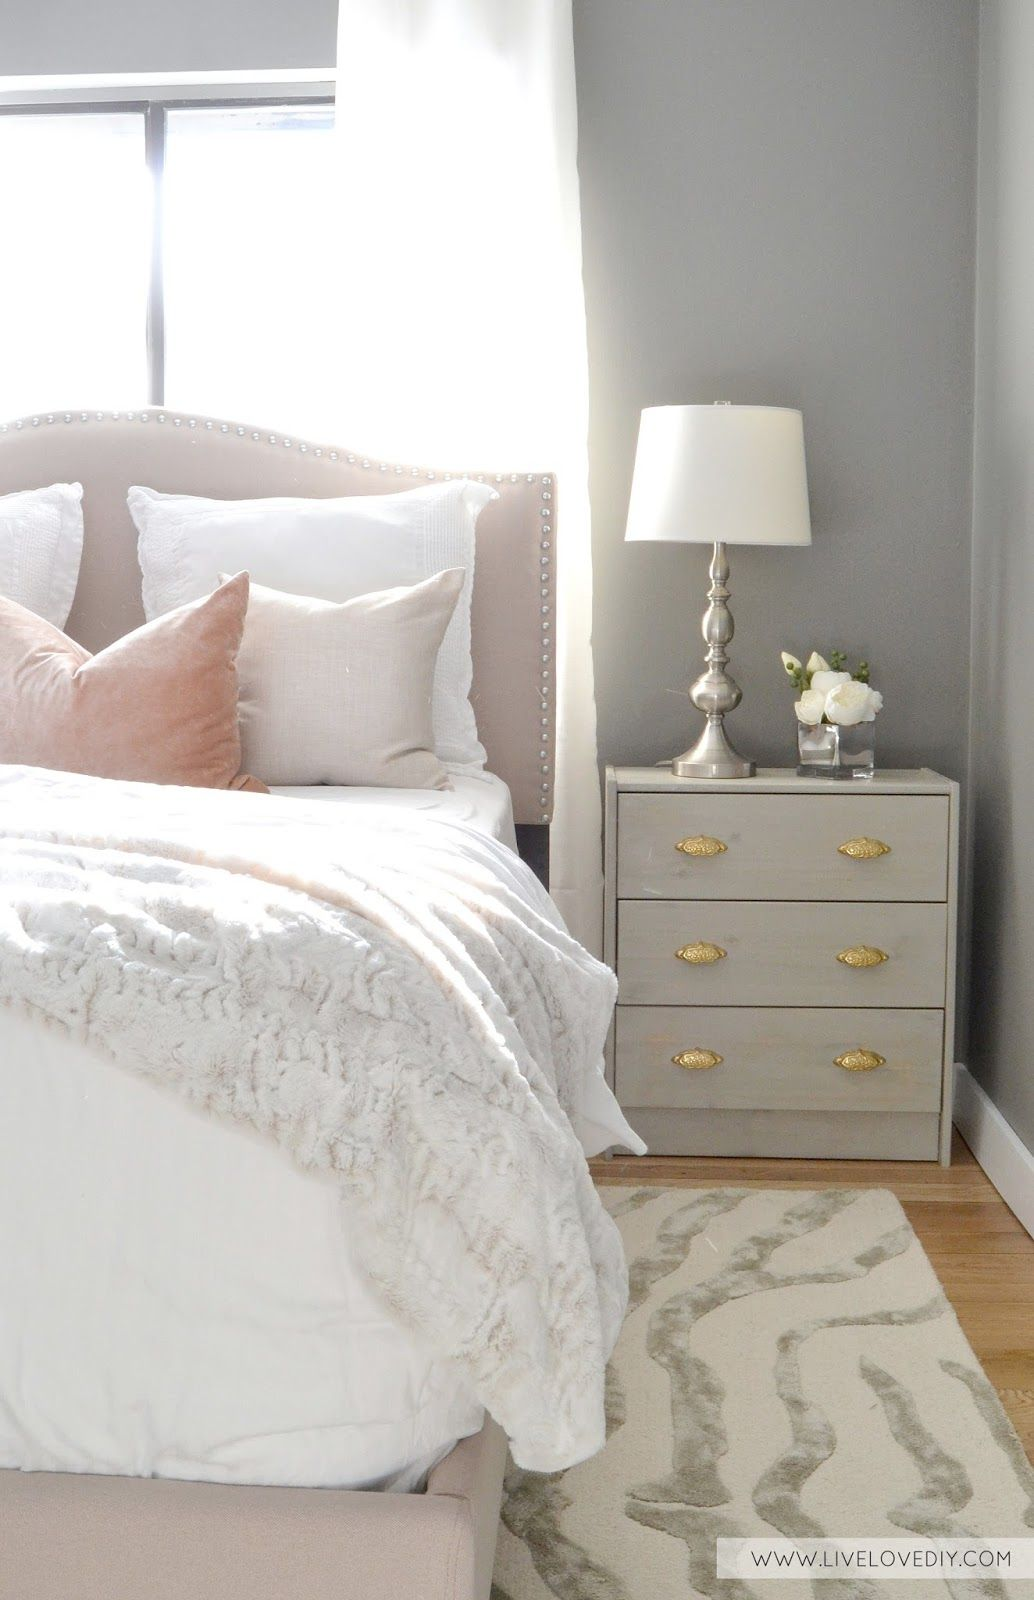 Livelovediy Diy Ikea Rast Hack With Sunbleached Gray Wood Stain Home Bedroom Bedroom Makeover Home Decor